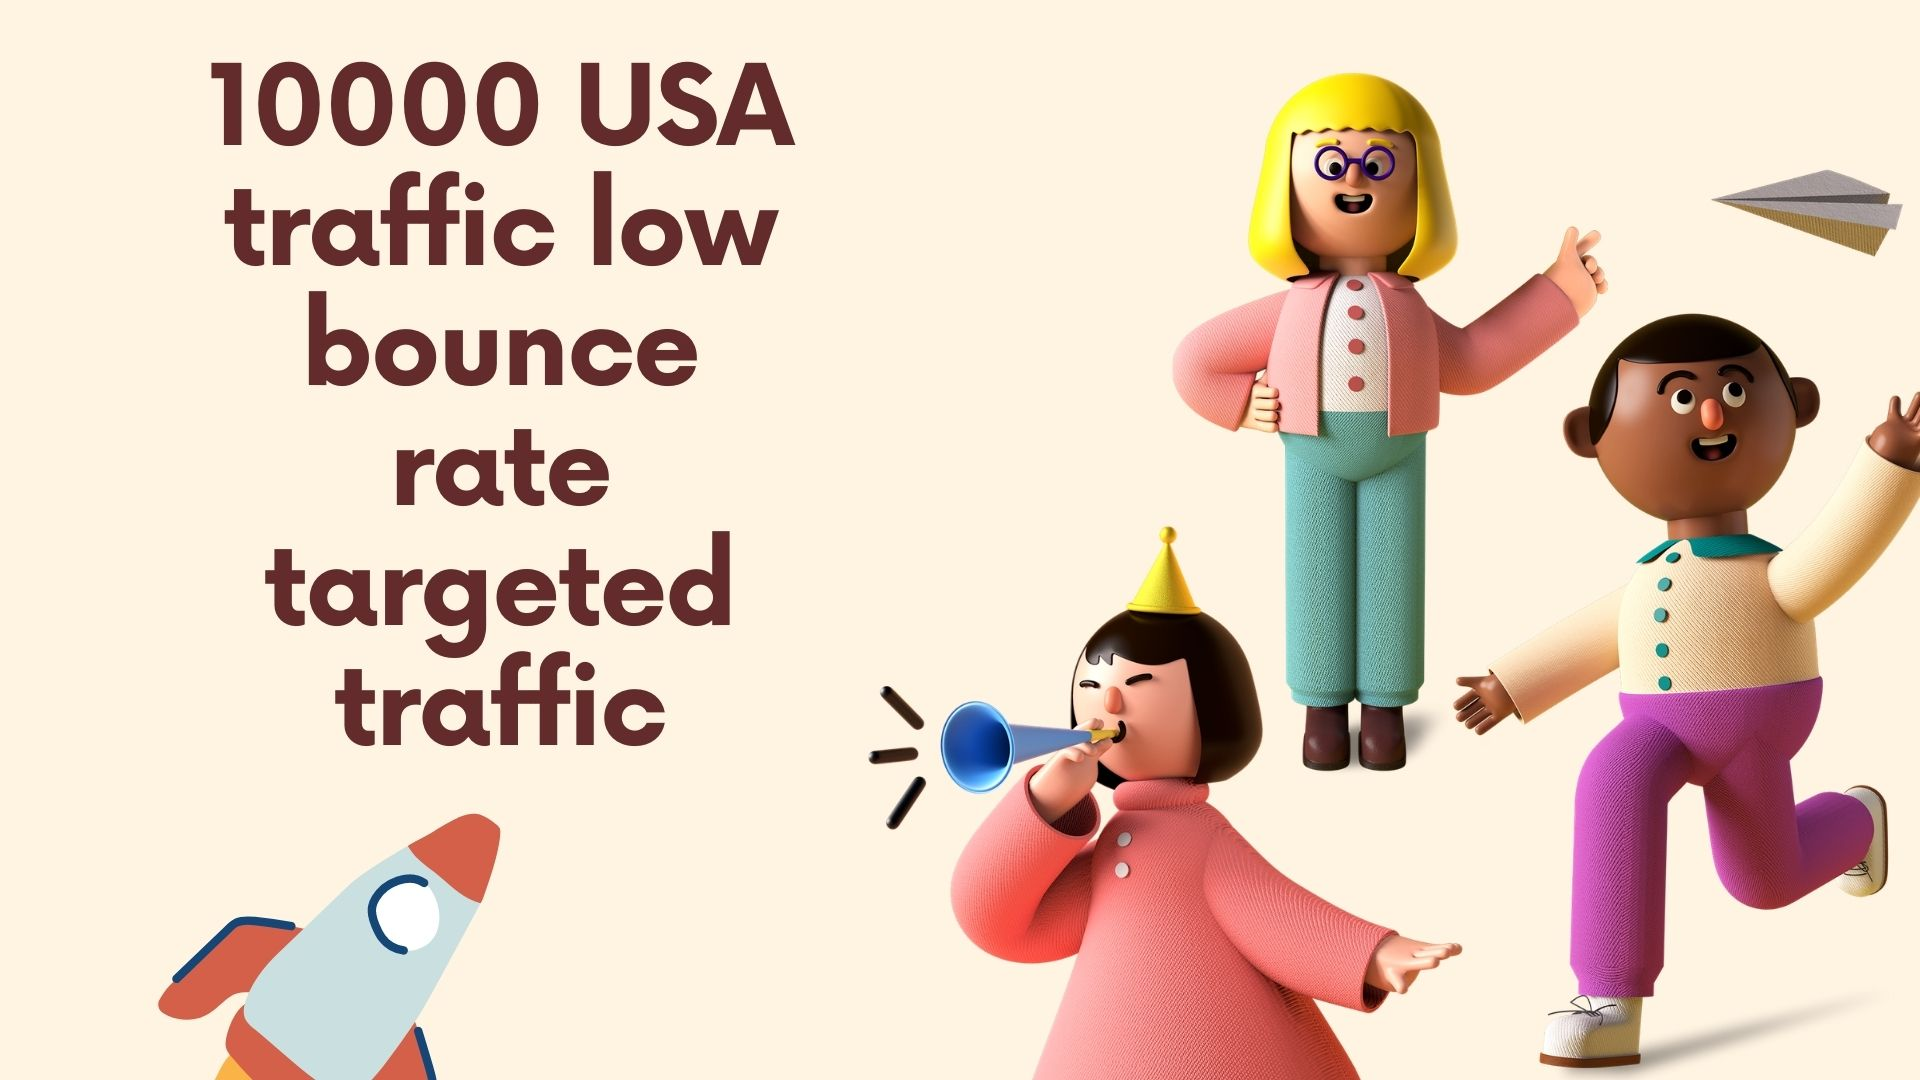 10000 USA traffic low bounce rate targeted traffic